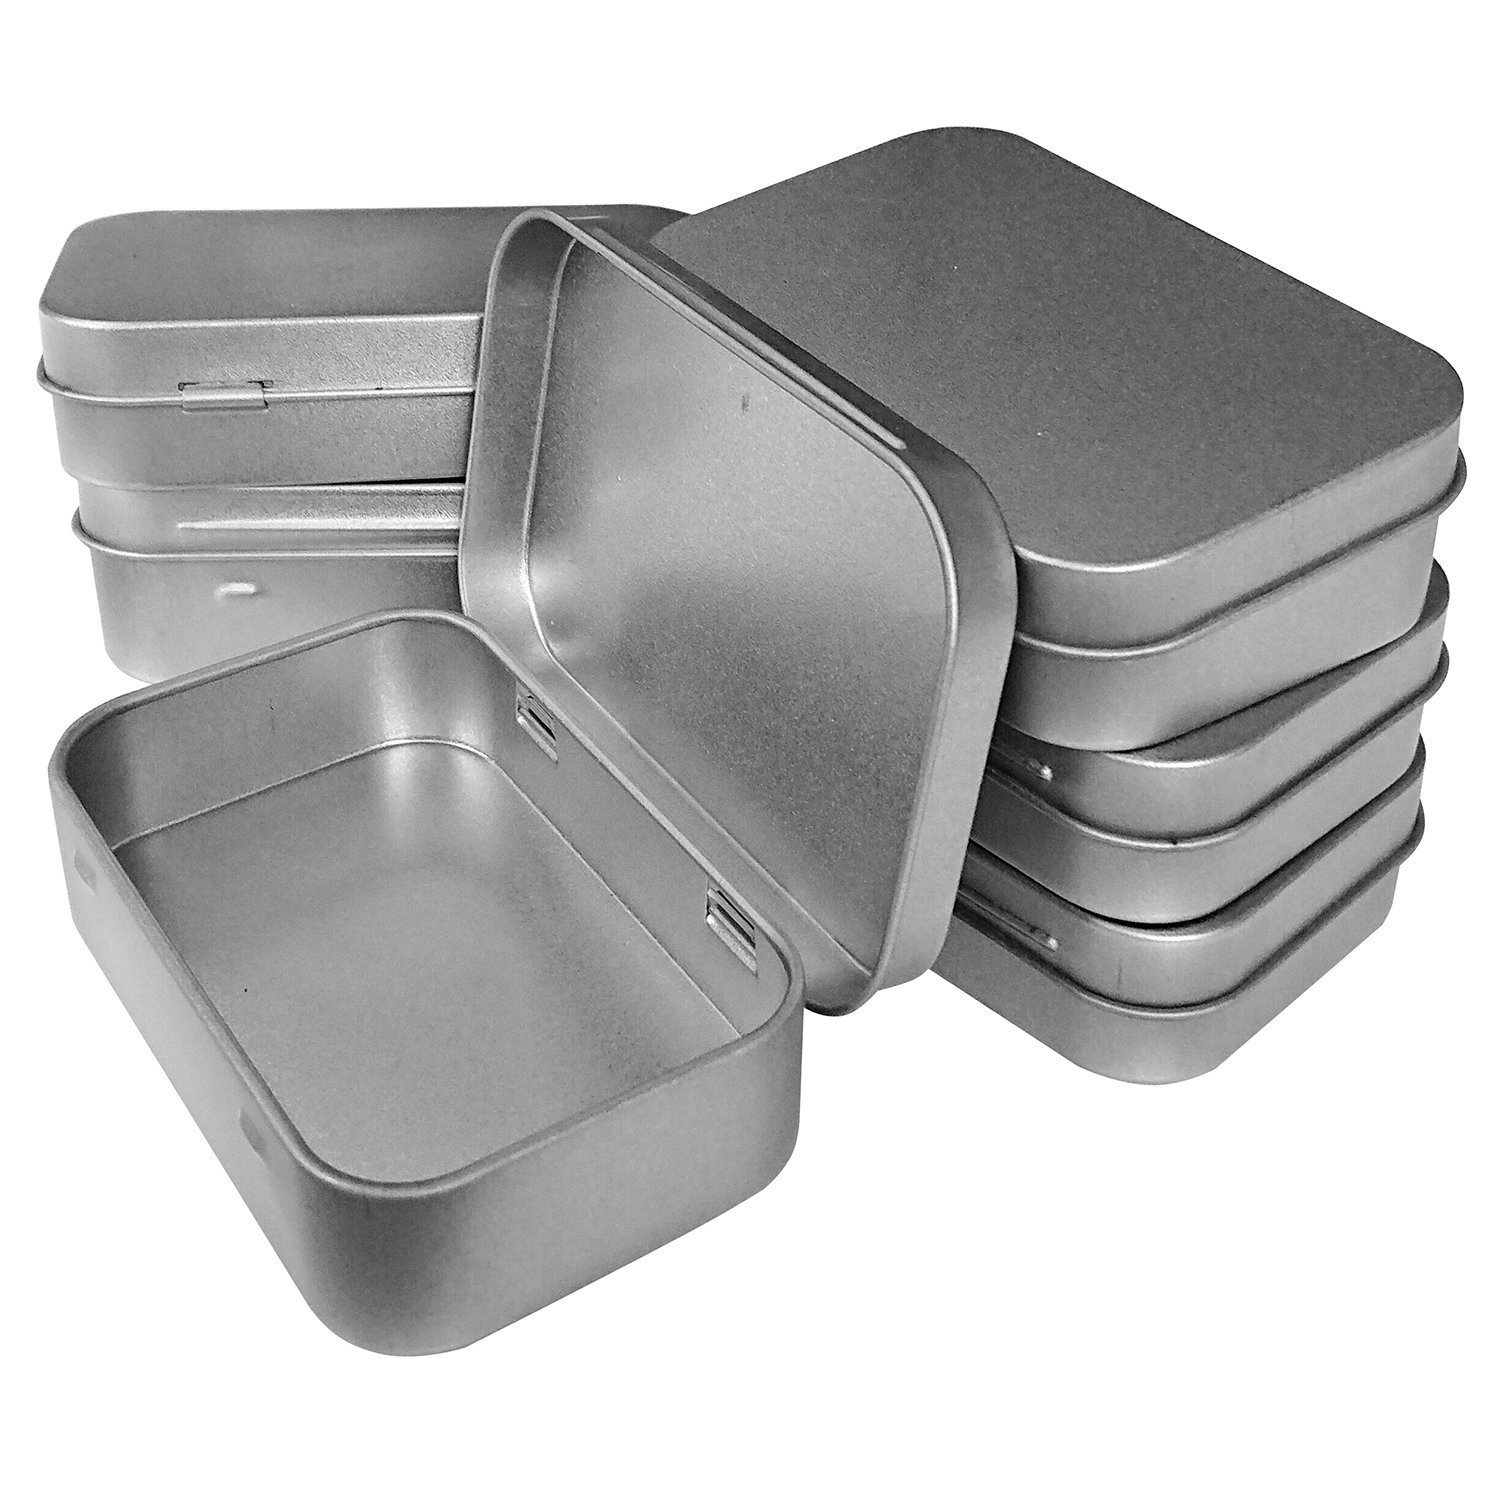 Hulless 3.75x2.45x0.8 Inch (24pcs) Metal Hinged Top Tin Box Containers, Mini Portable small storage containers Kit, Tin Box Containers, small tins with lids, craft containers, Tin empty boxes, Home Storage.